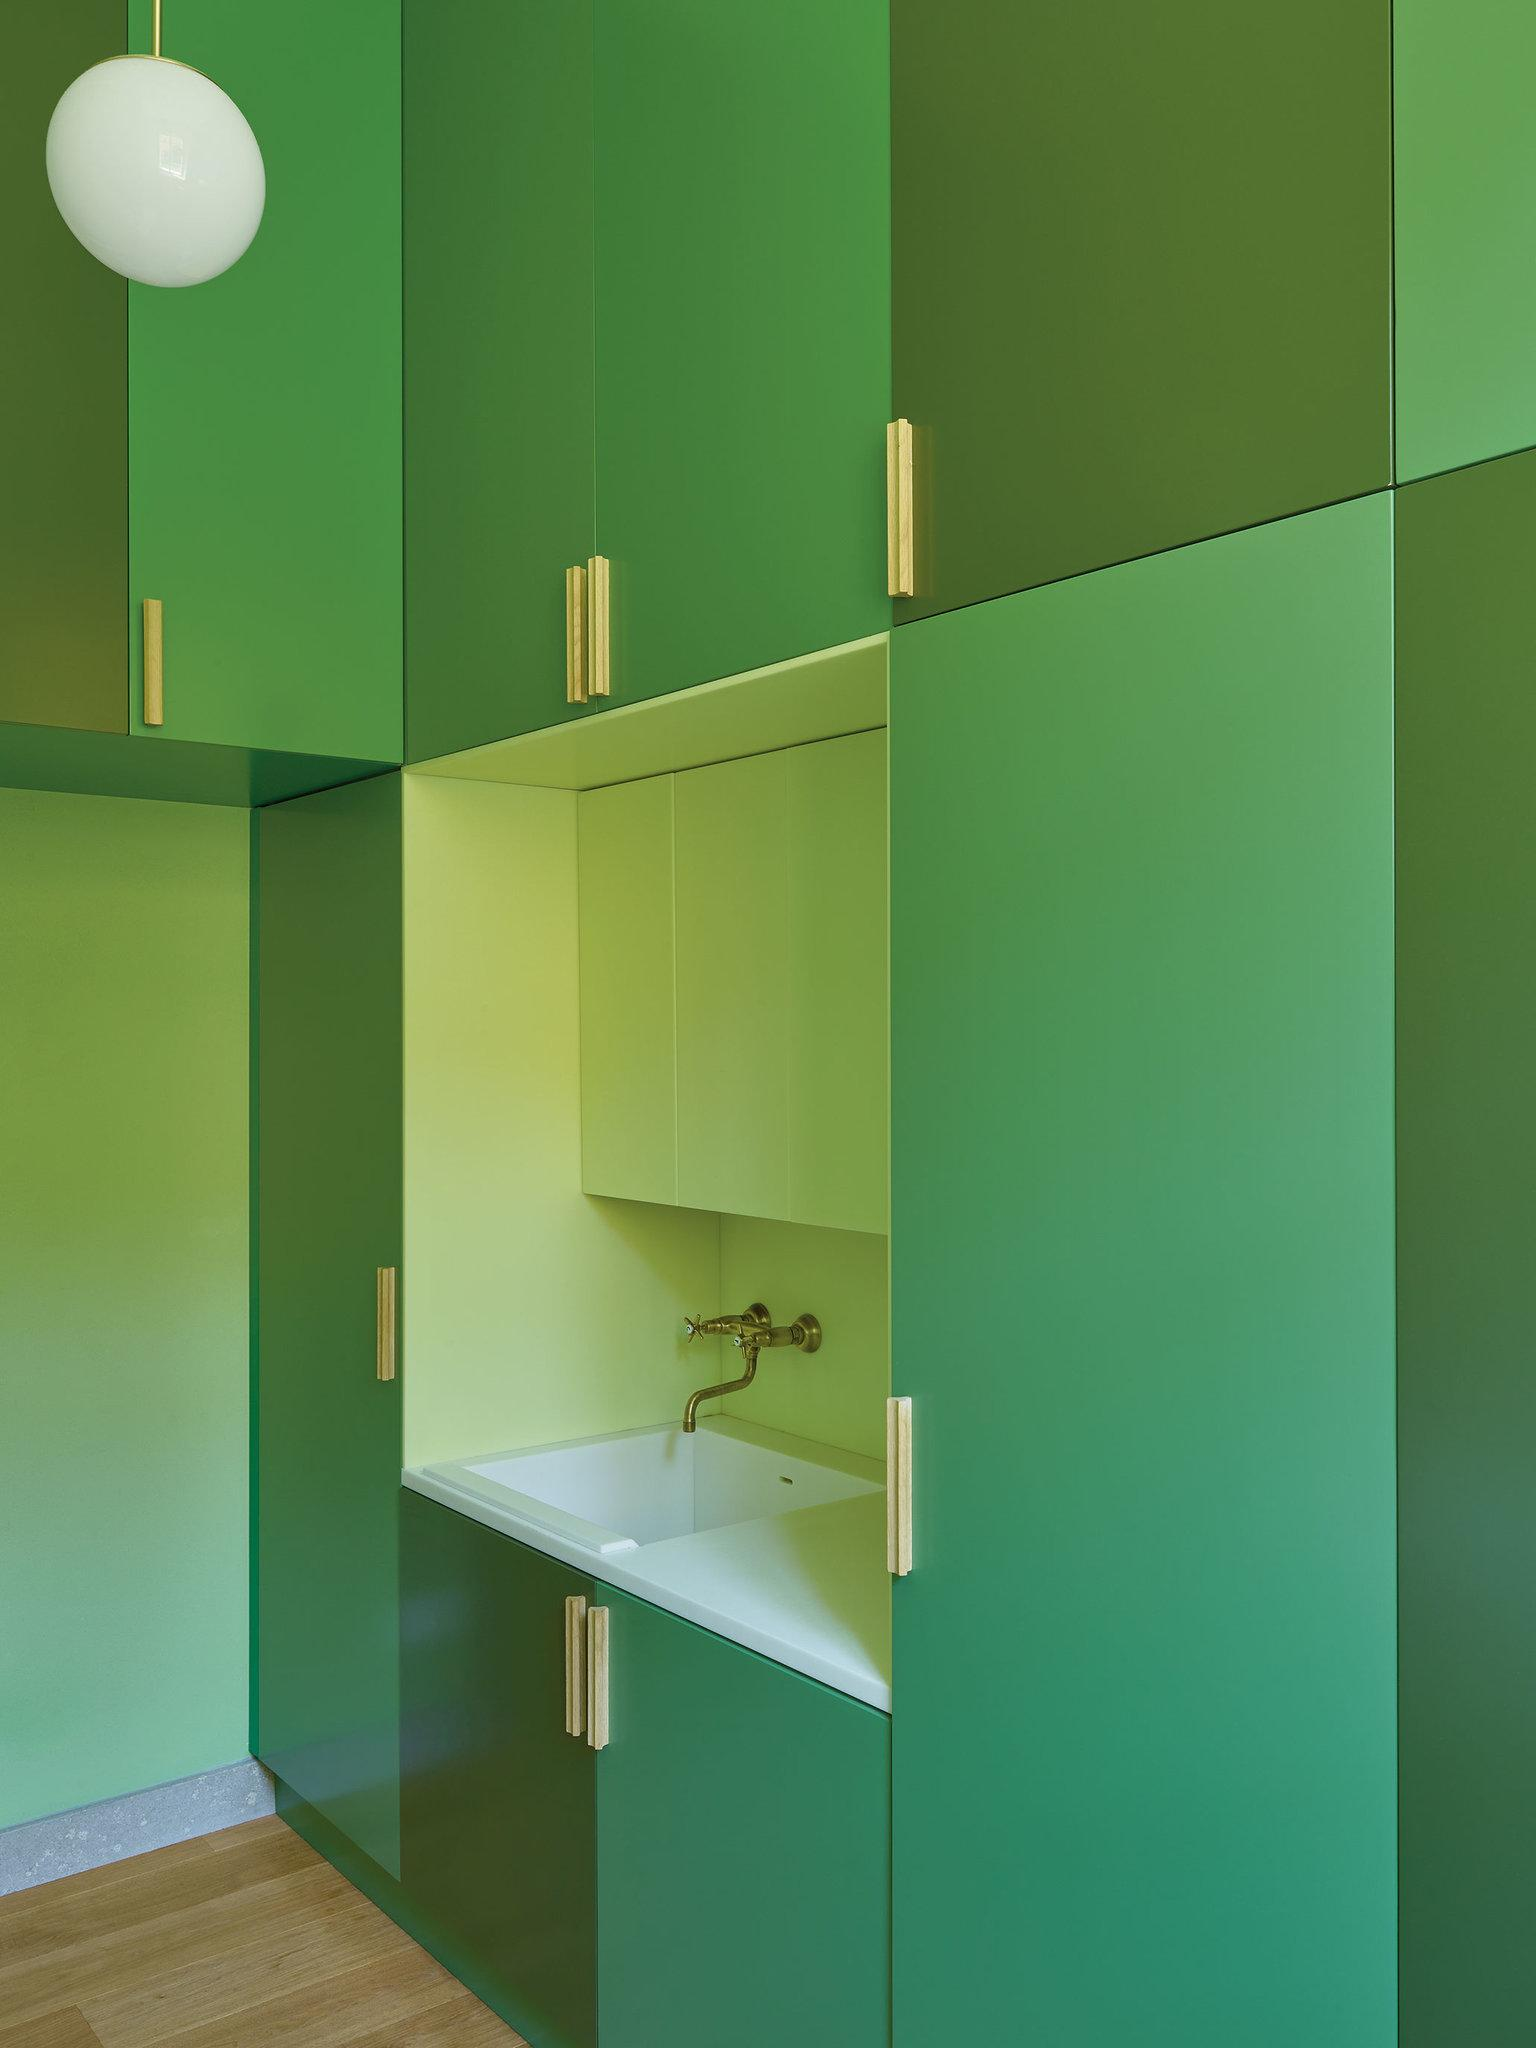 Opaque lacquered cabinets in shades of green in the laundry room